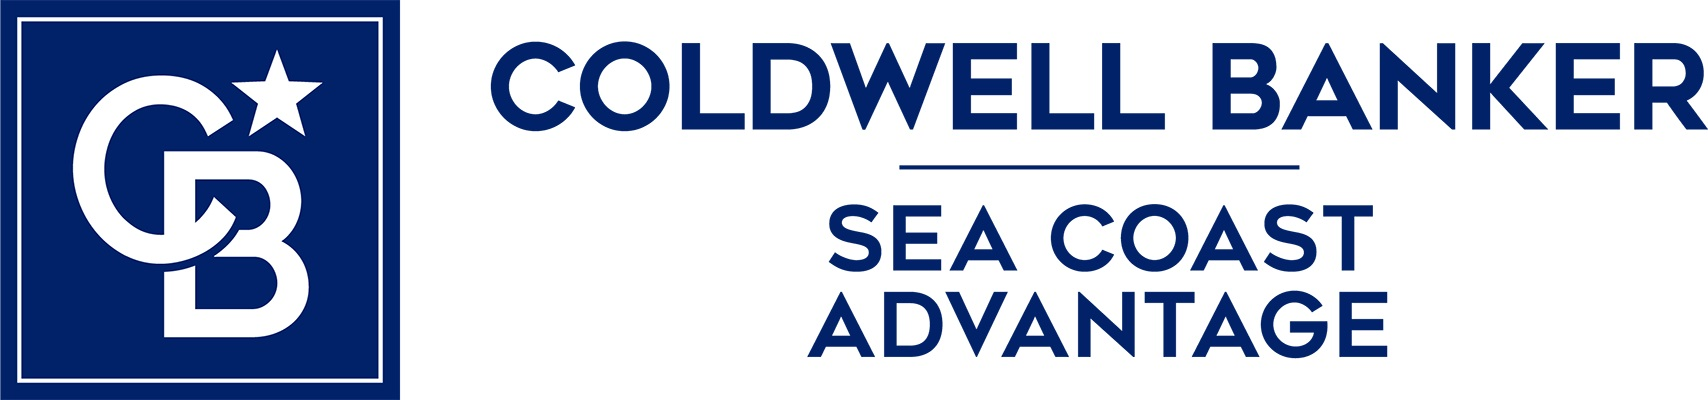 Jenee Stankus - Coldwell Banker Sea Coast Advantage Realty Logo